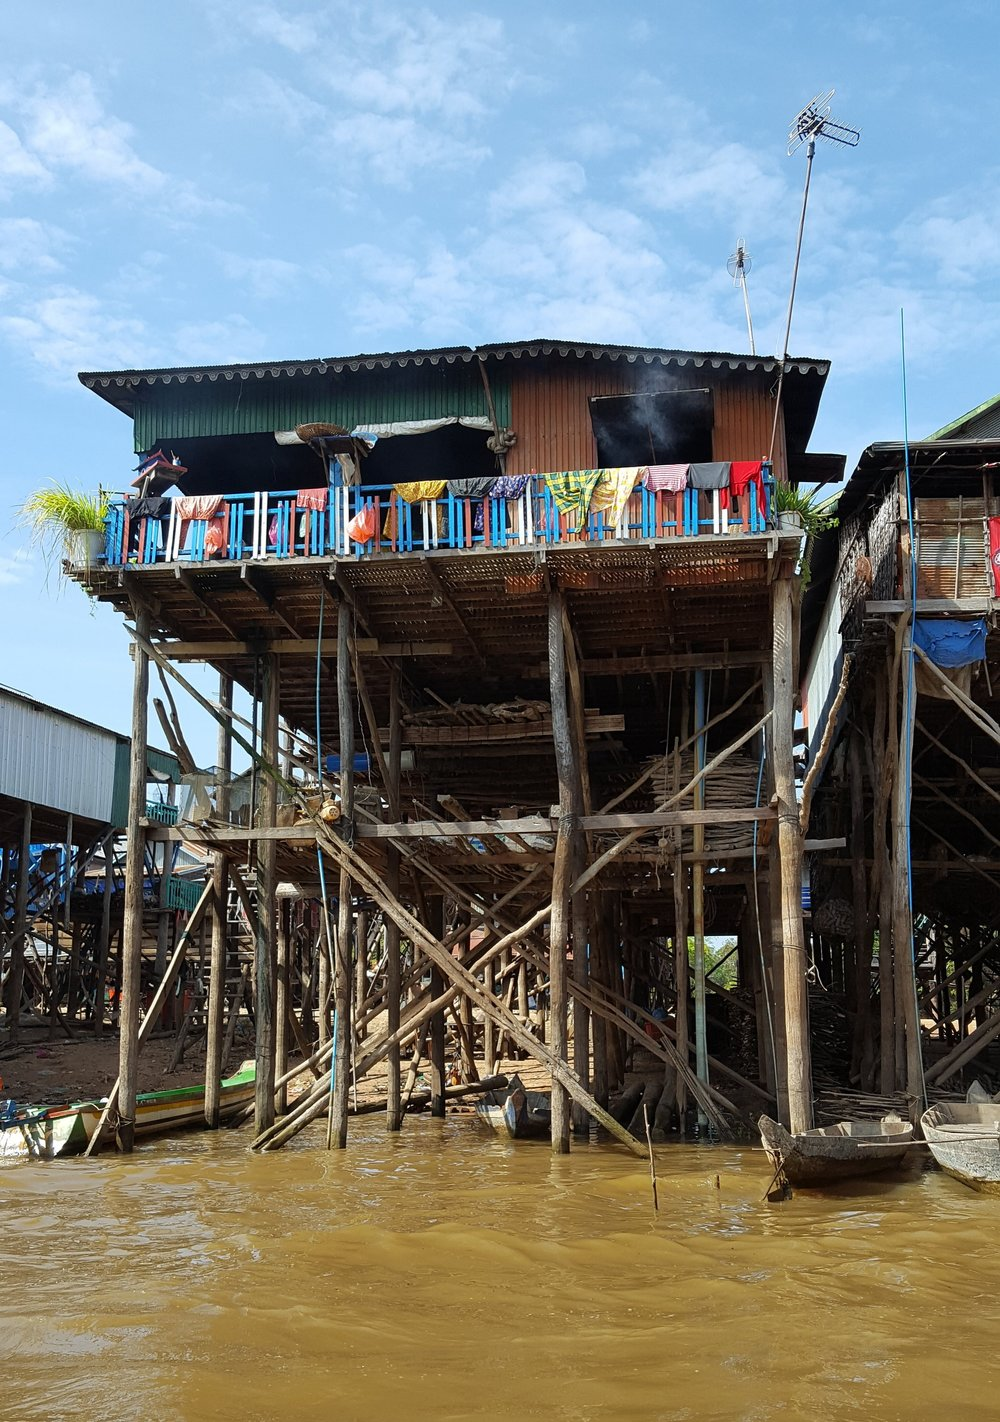 House at Kompong Khleang floating village